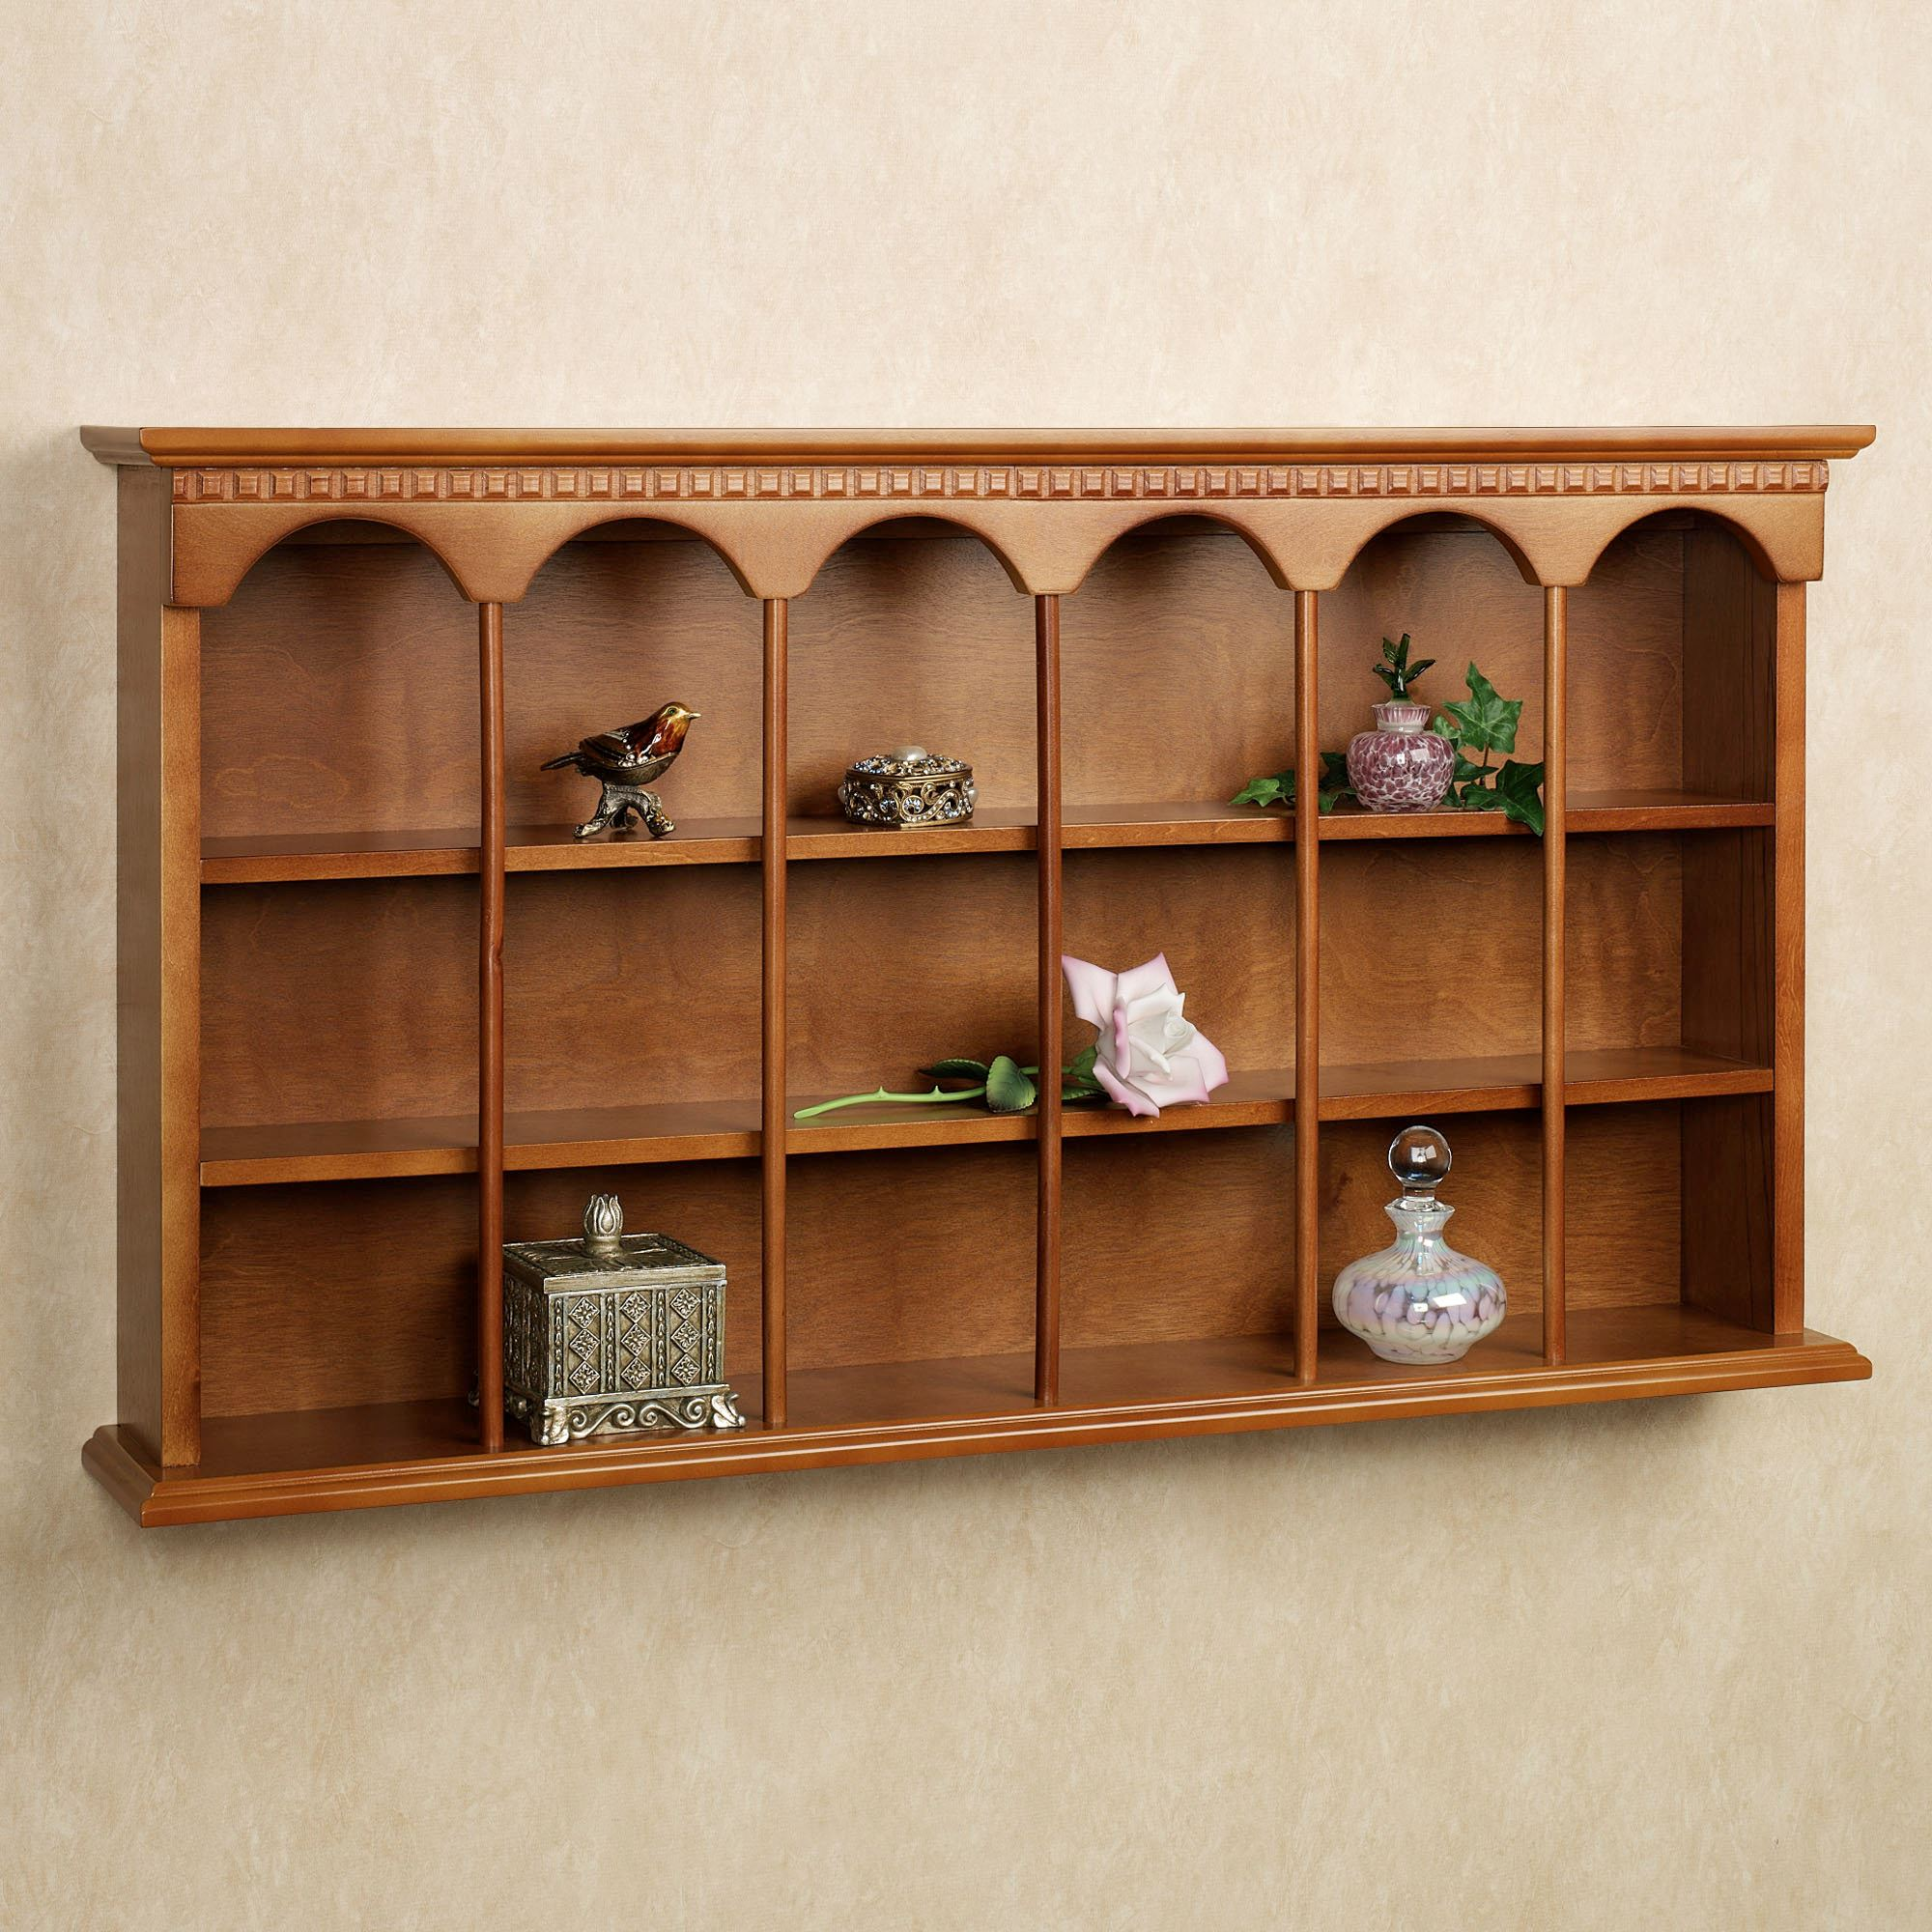 mackenzie wooden wall curio display shelf. Black Bedroom Furniture Sets. Home Design Ideas